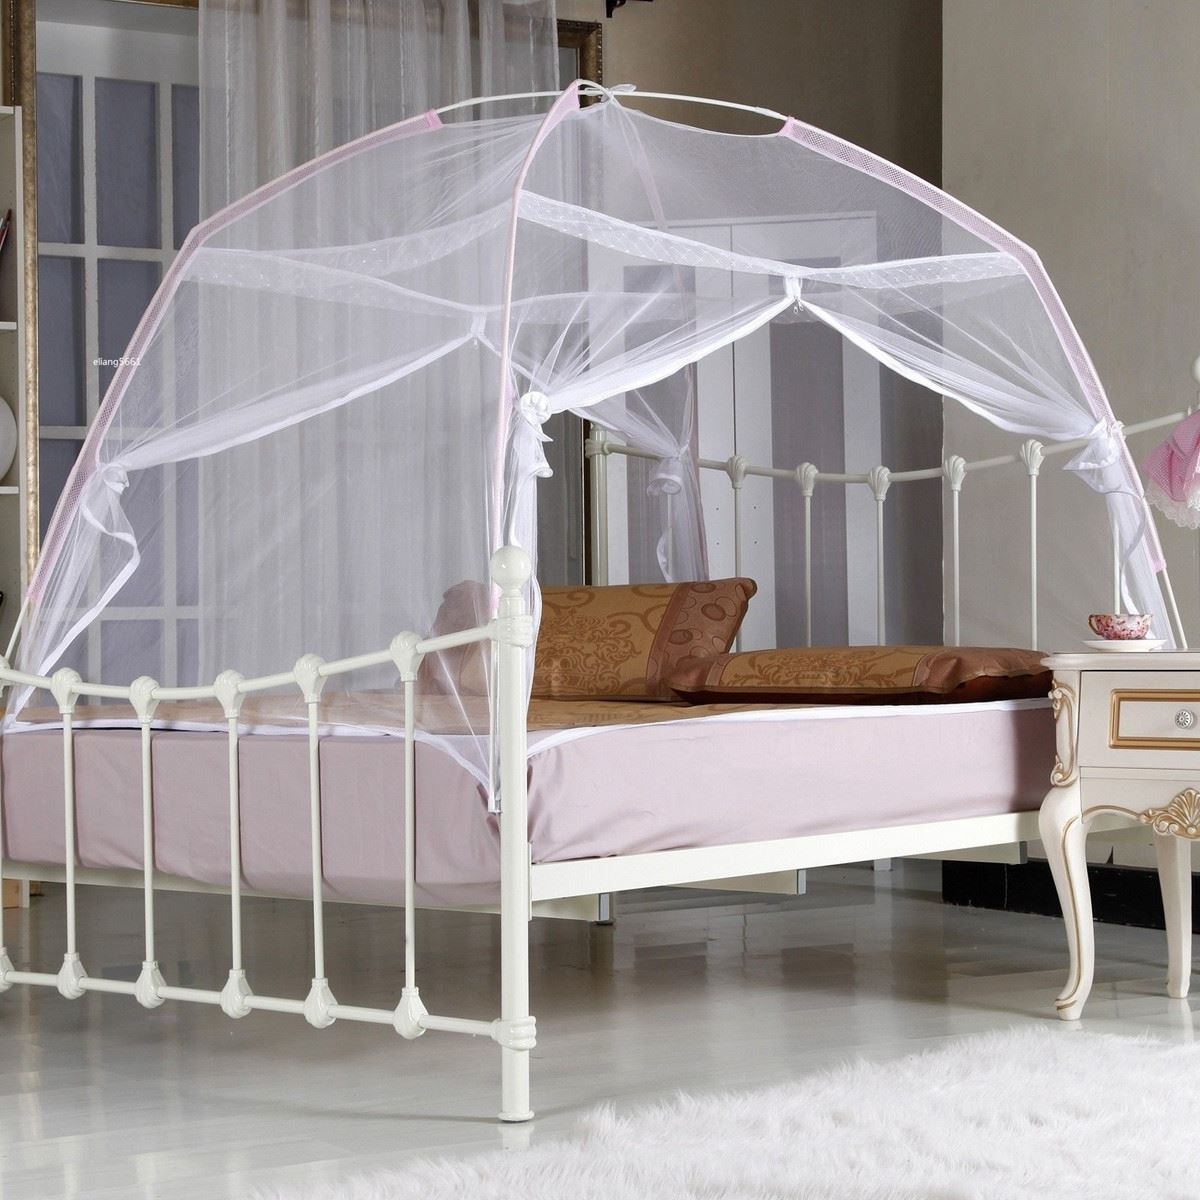 Online Cheap Portable Canopy Group